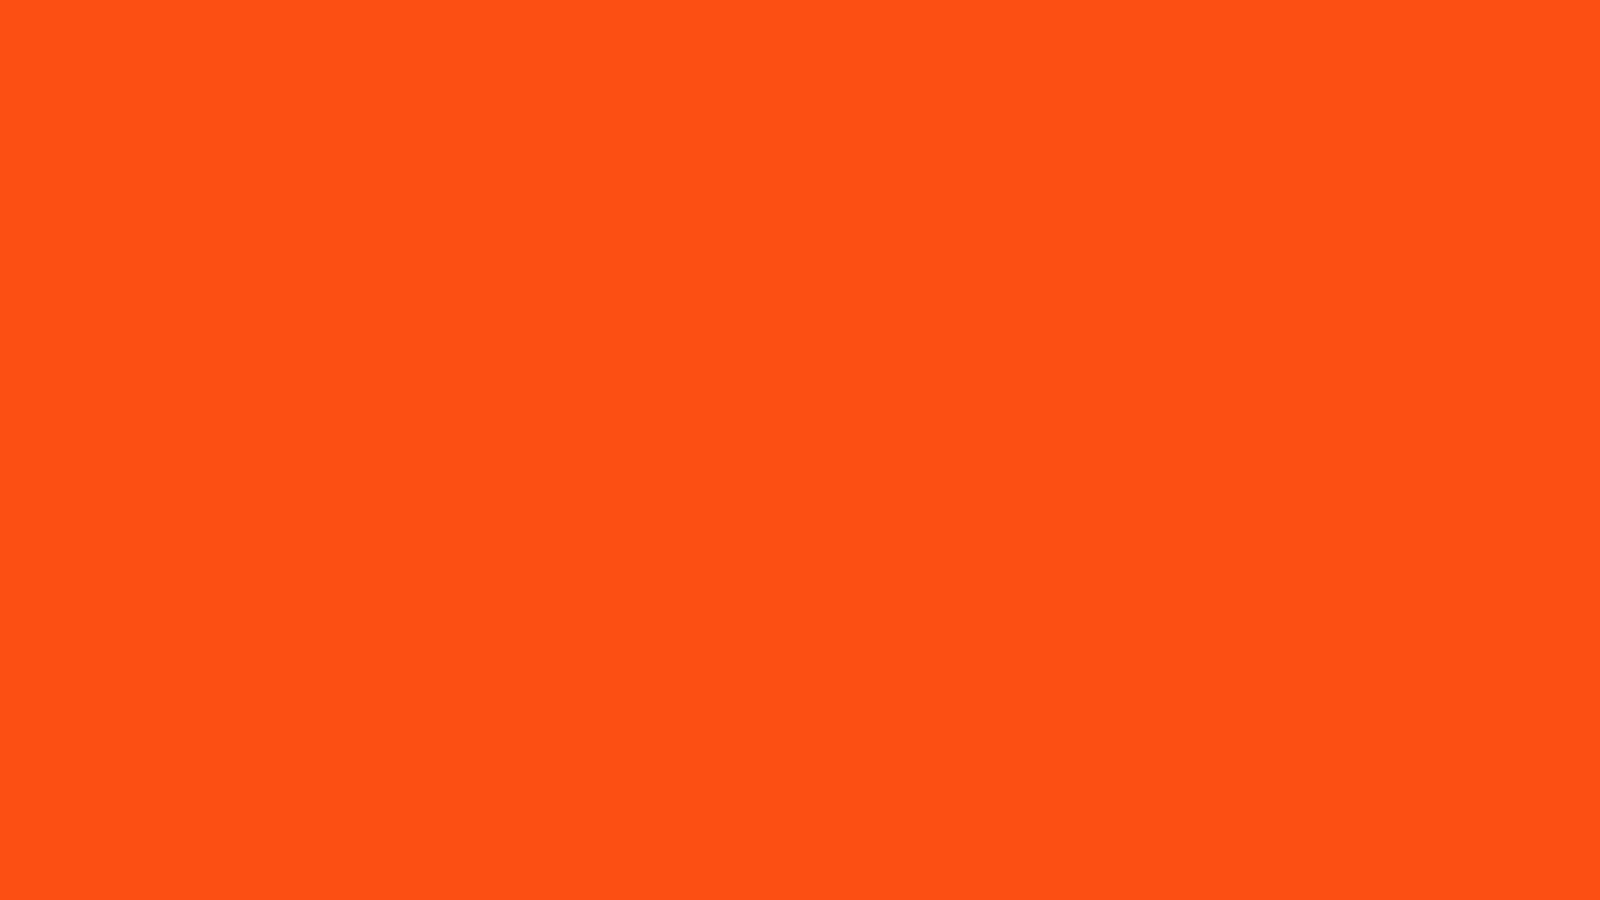 Orange solid color background view and download the below background 1600x900